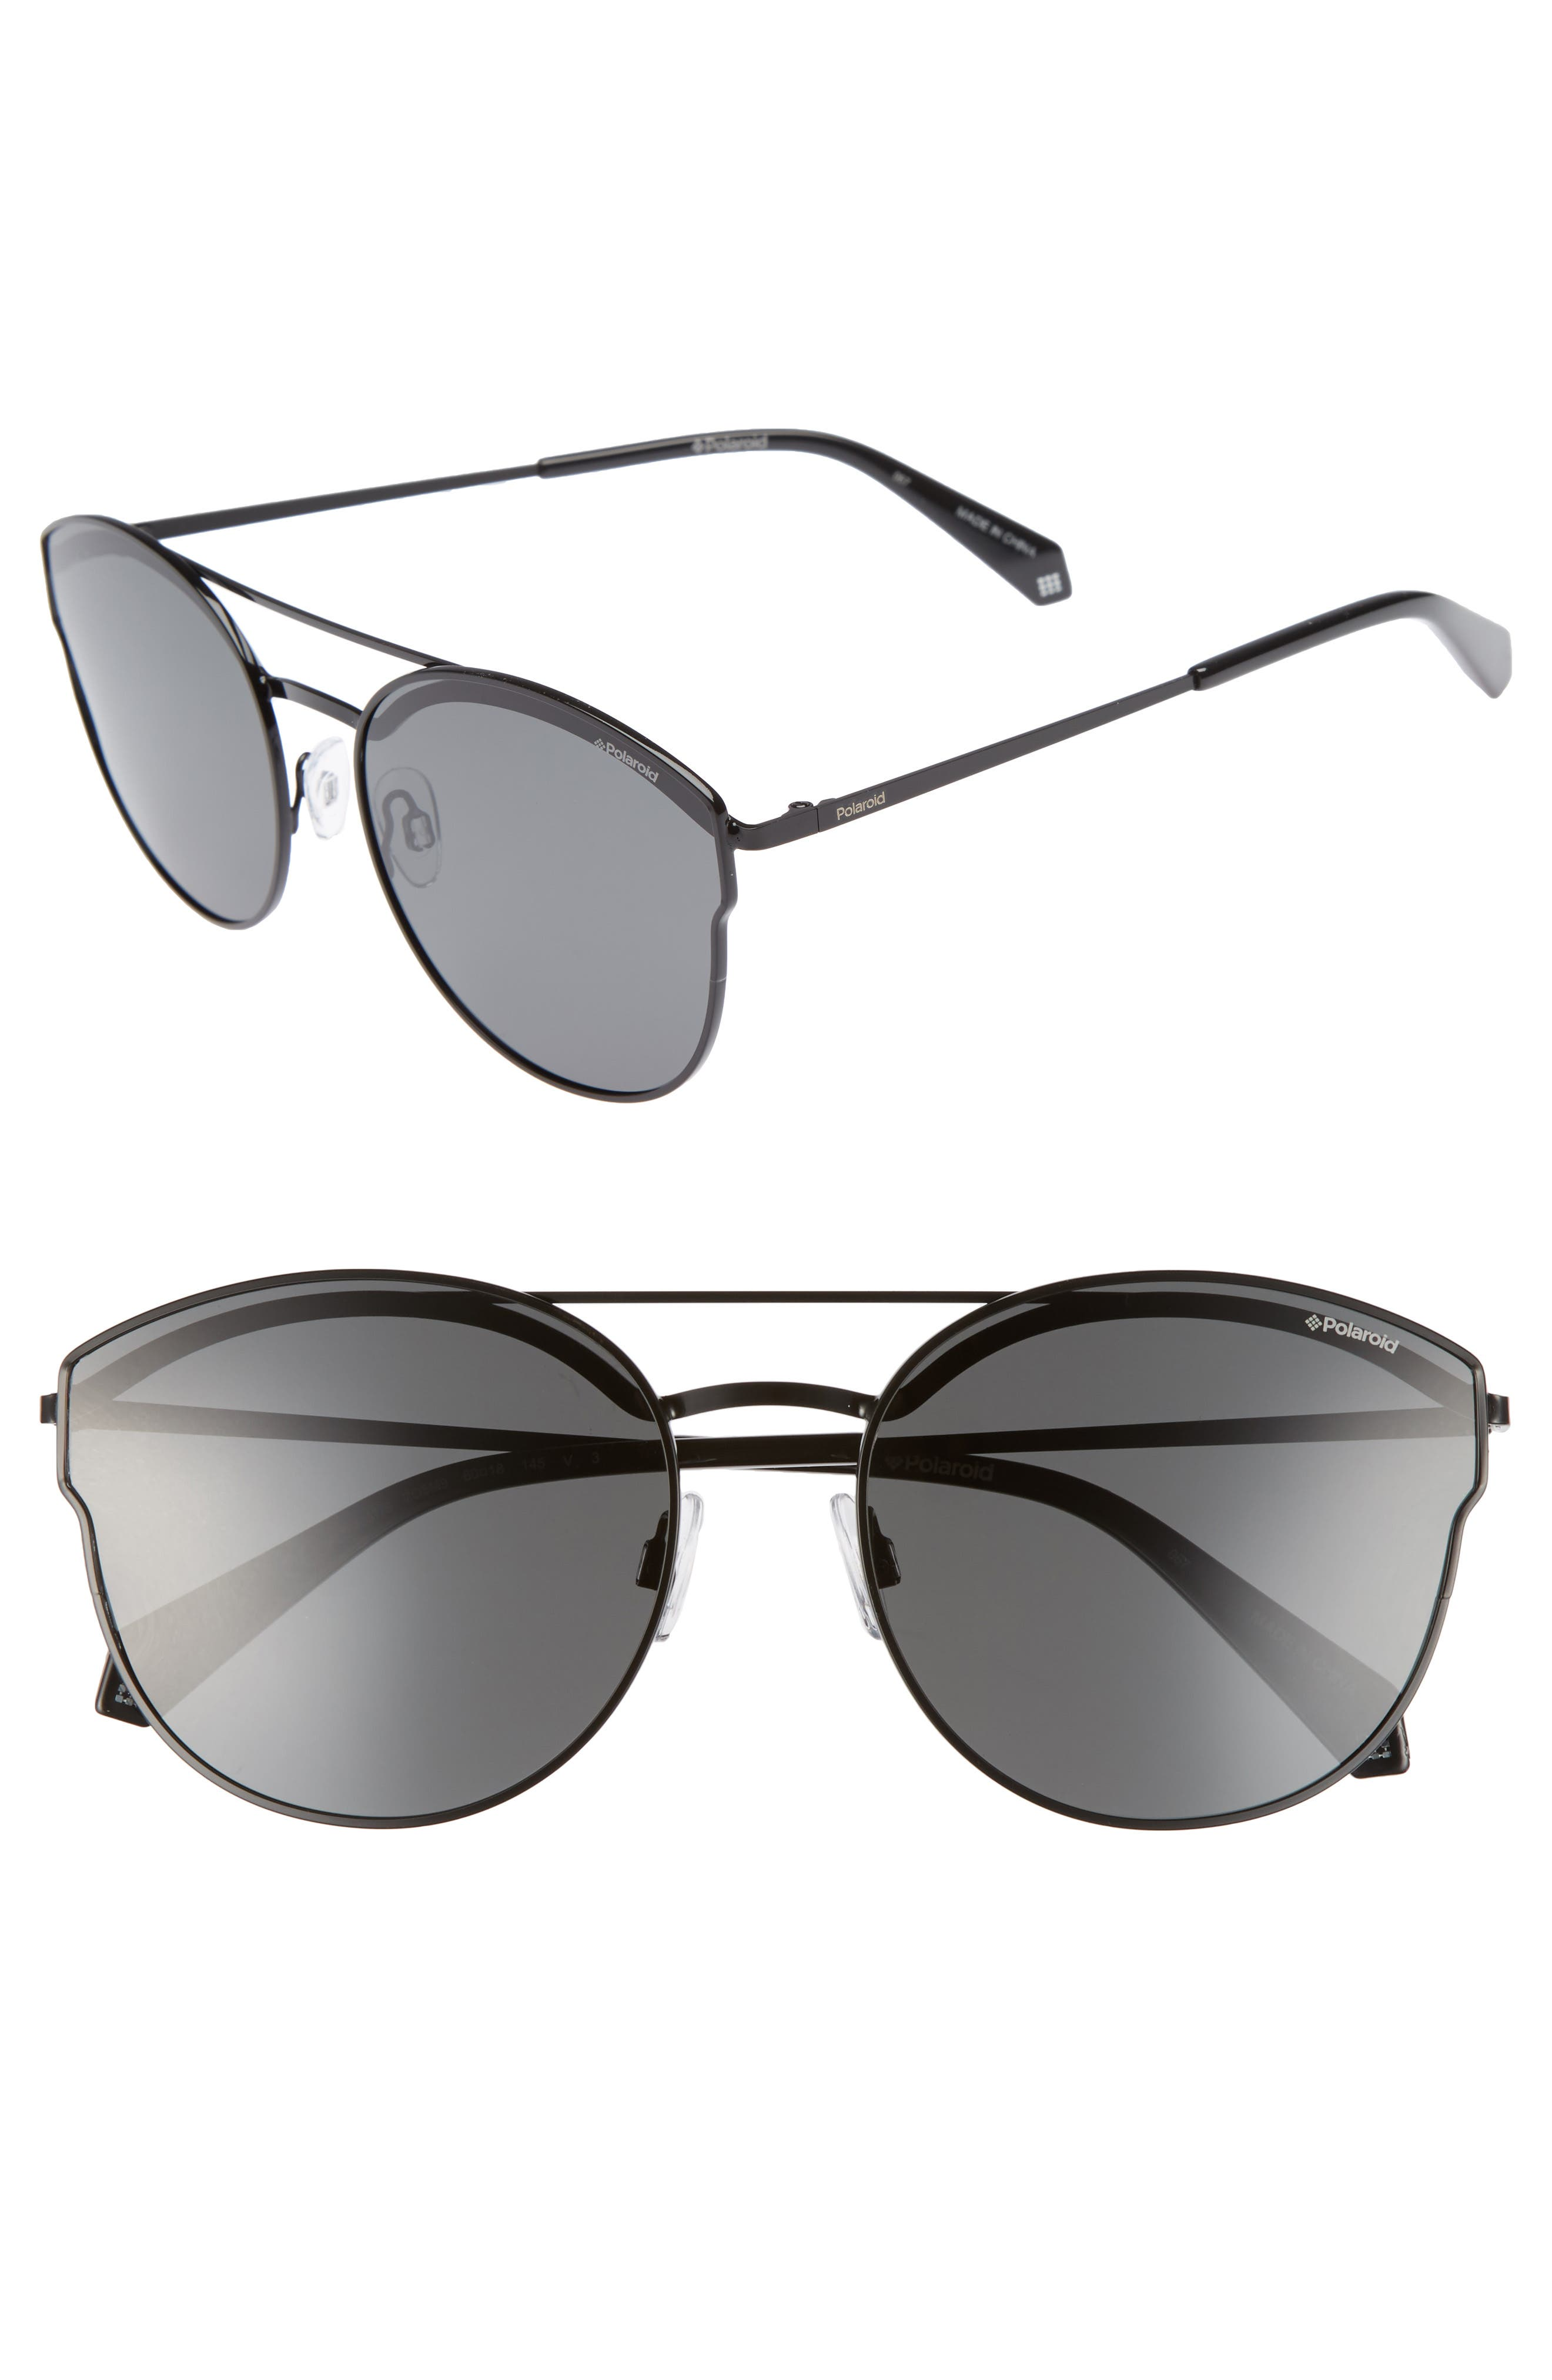 60mm Polarized Round Aviator Sunglasses,                             Main thumbnail 1, color,                             001